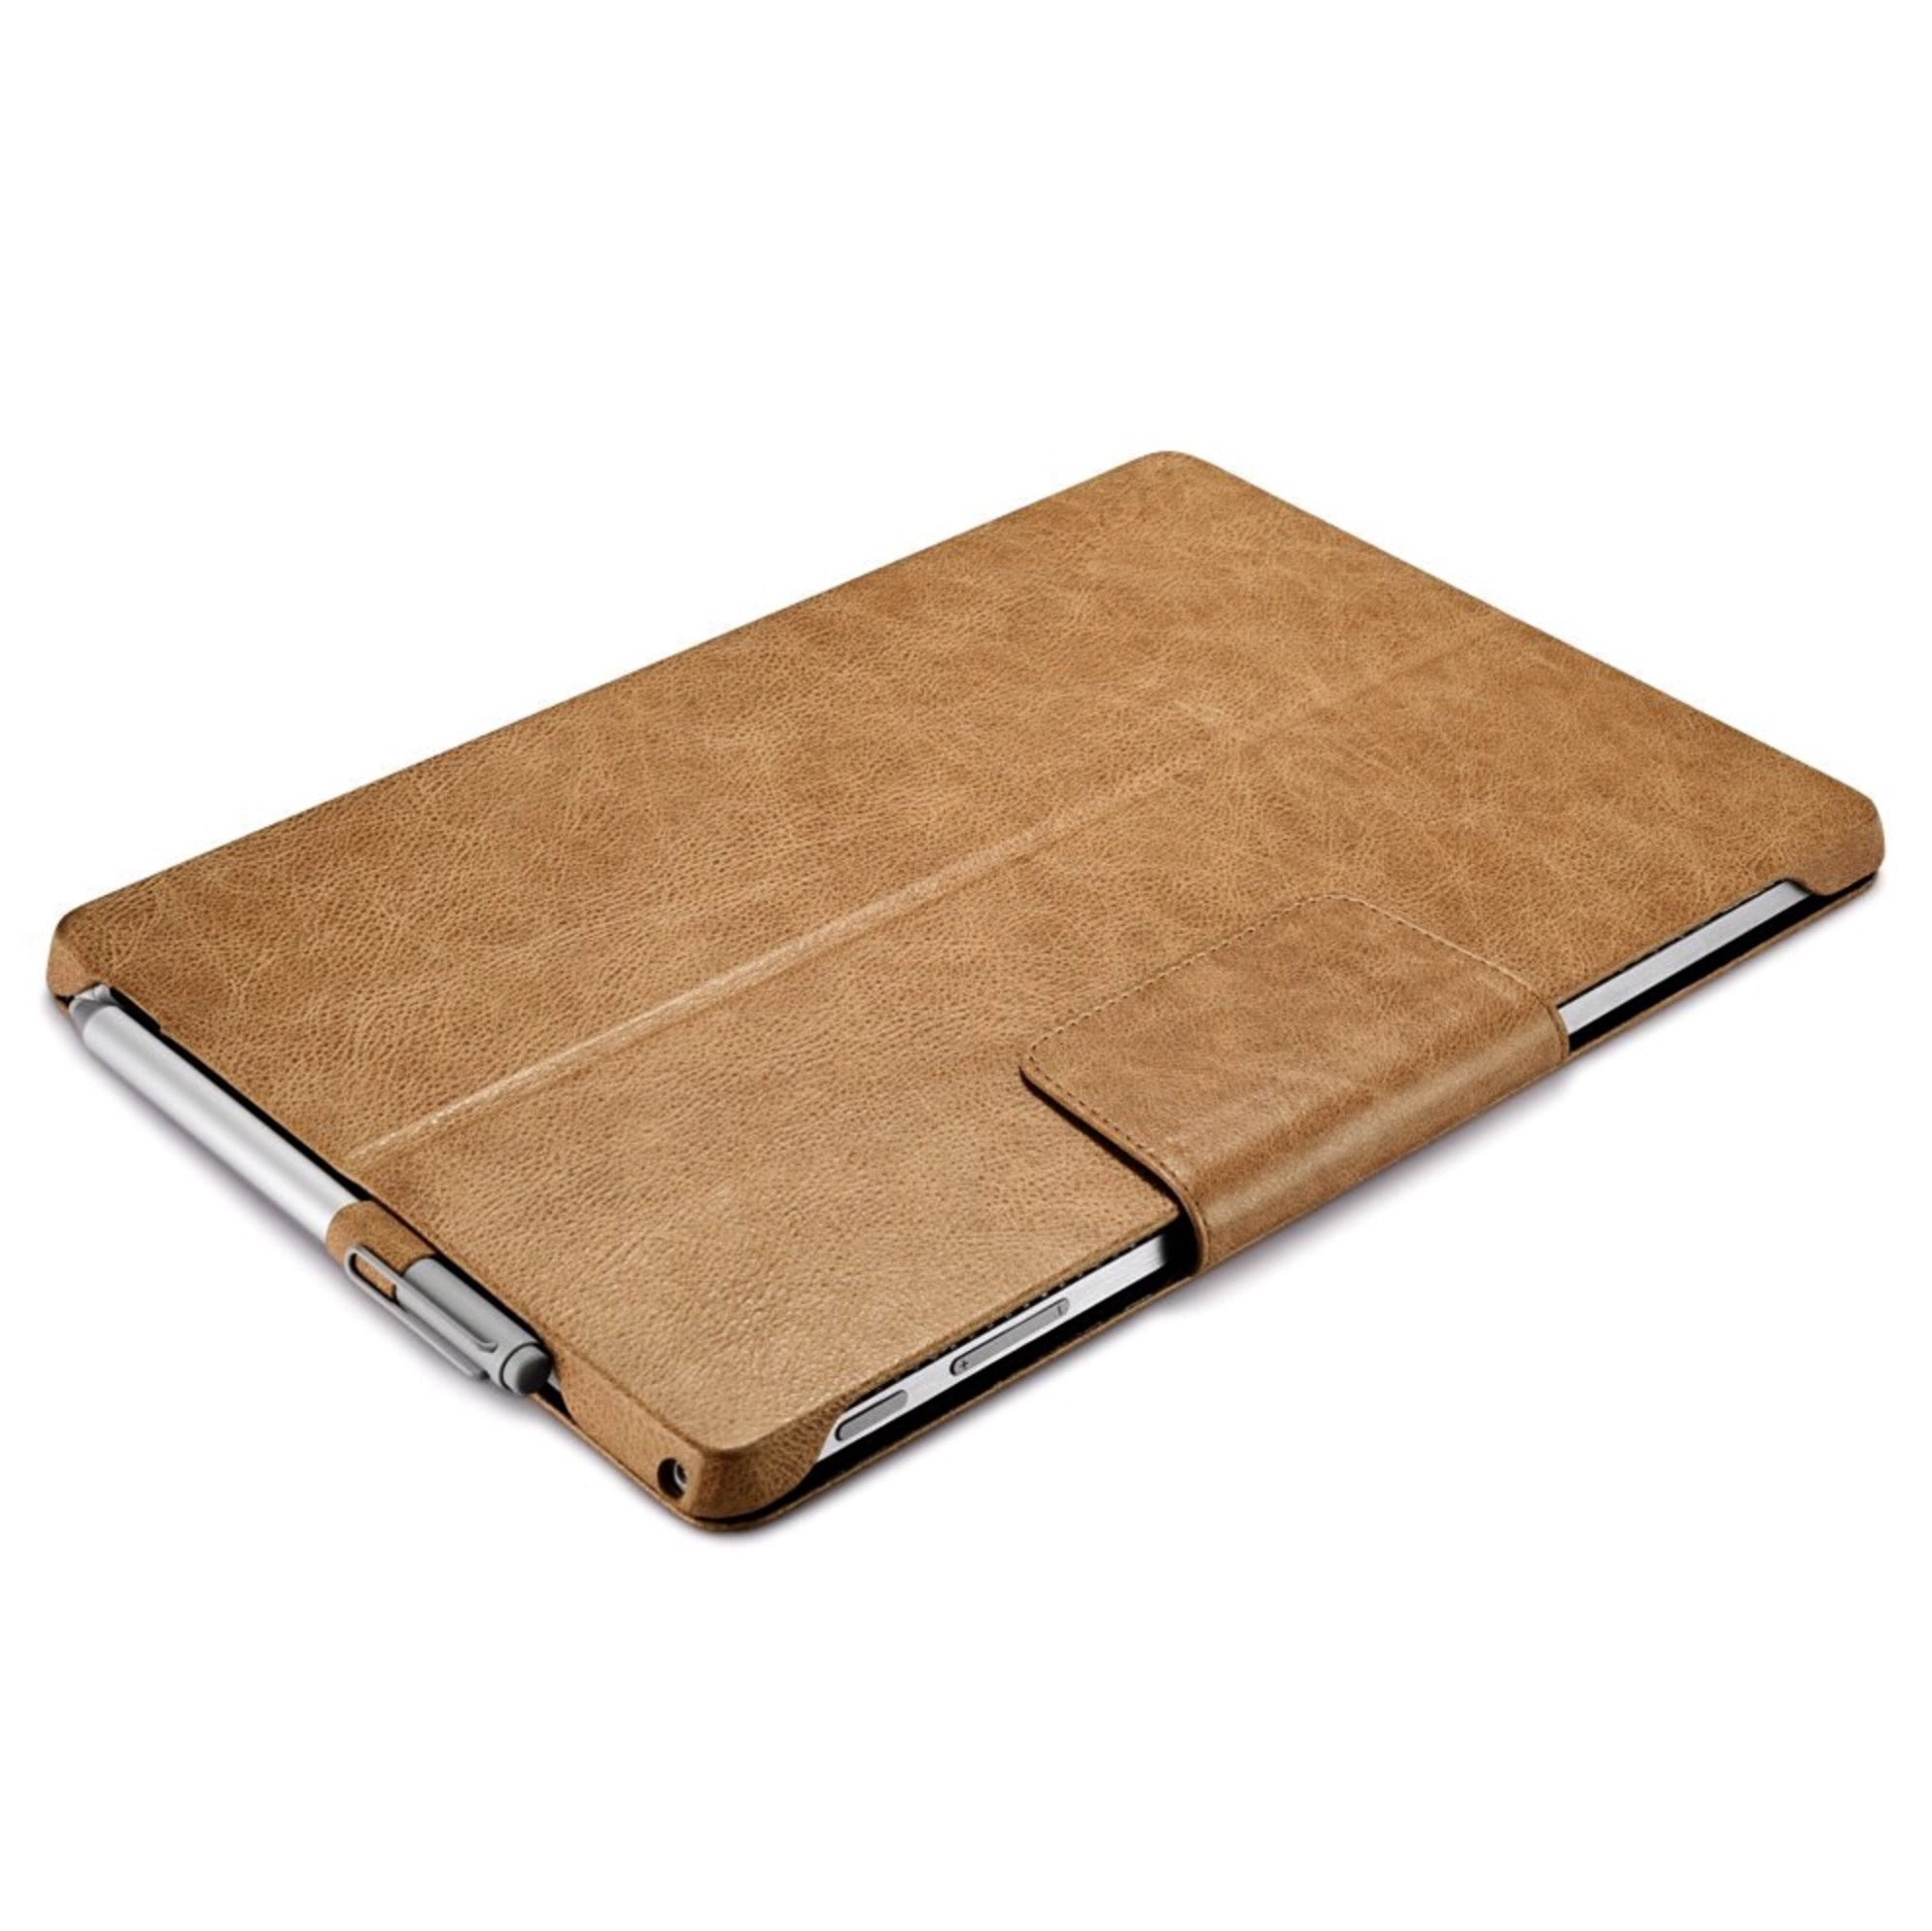 Microsoft Surface PRO 7 et Surface PRO 6 Etui Cuir veritable Firenze CAMEL